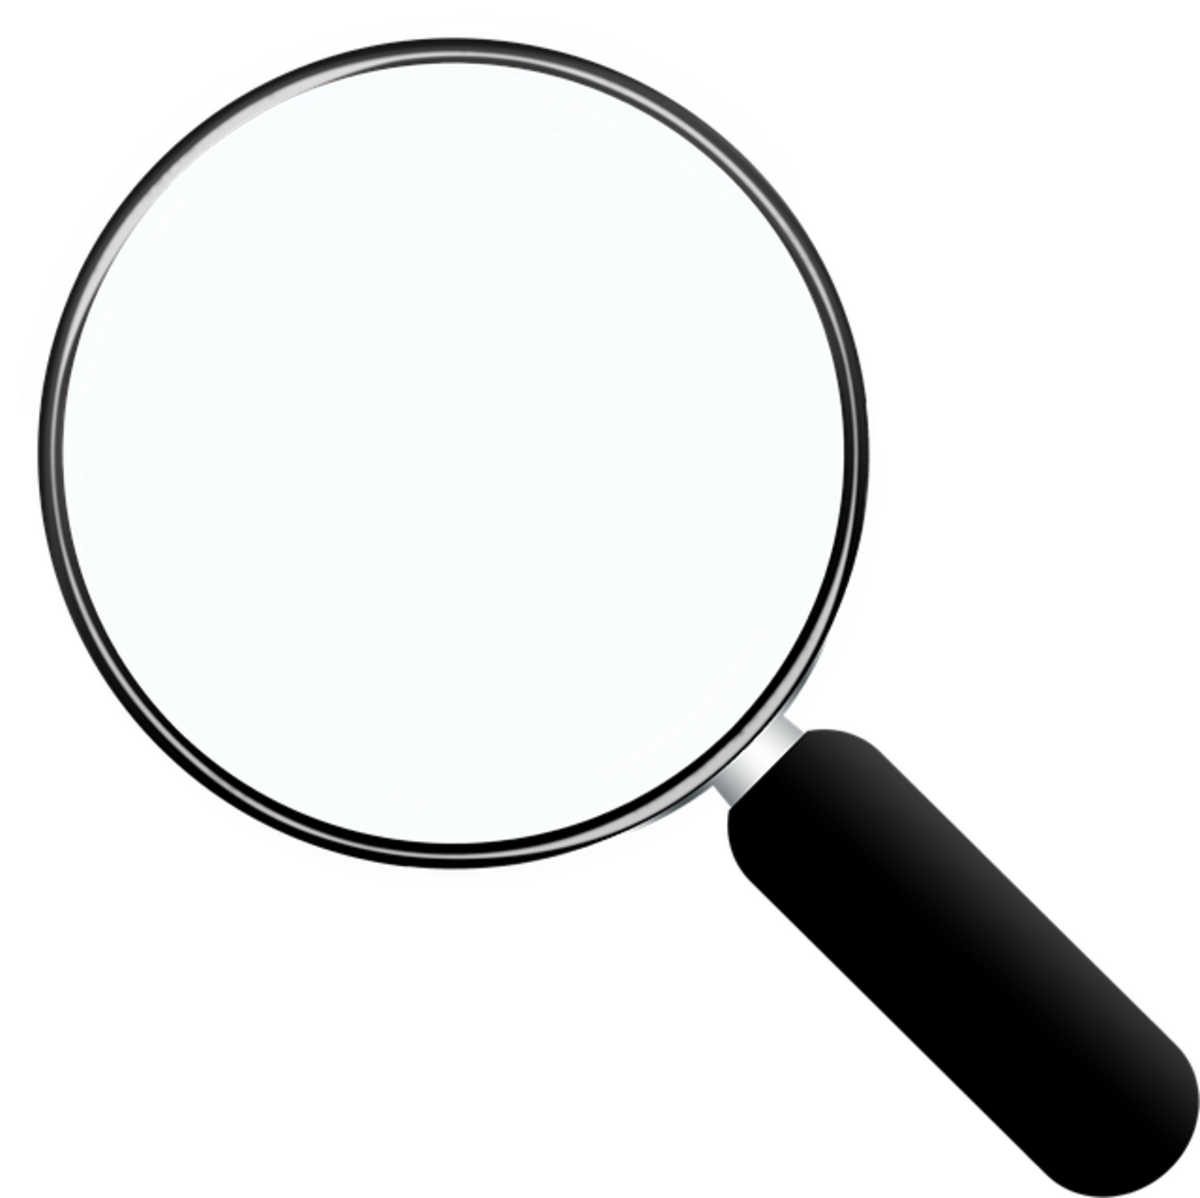 magnifying-glass-3615985_640